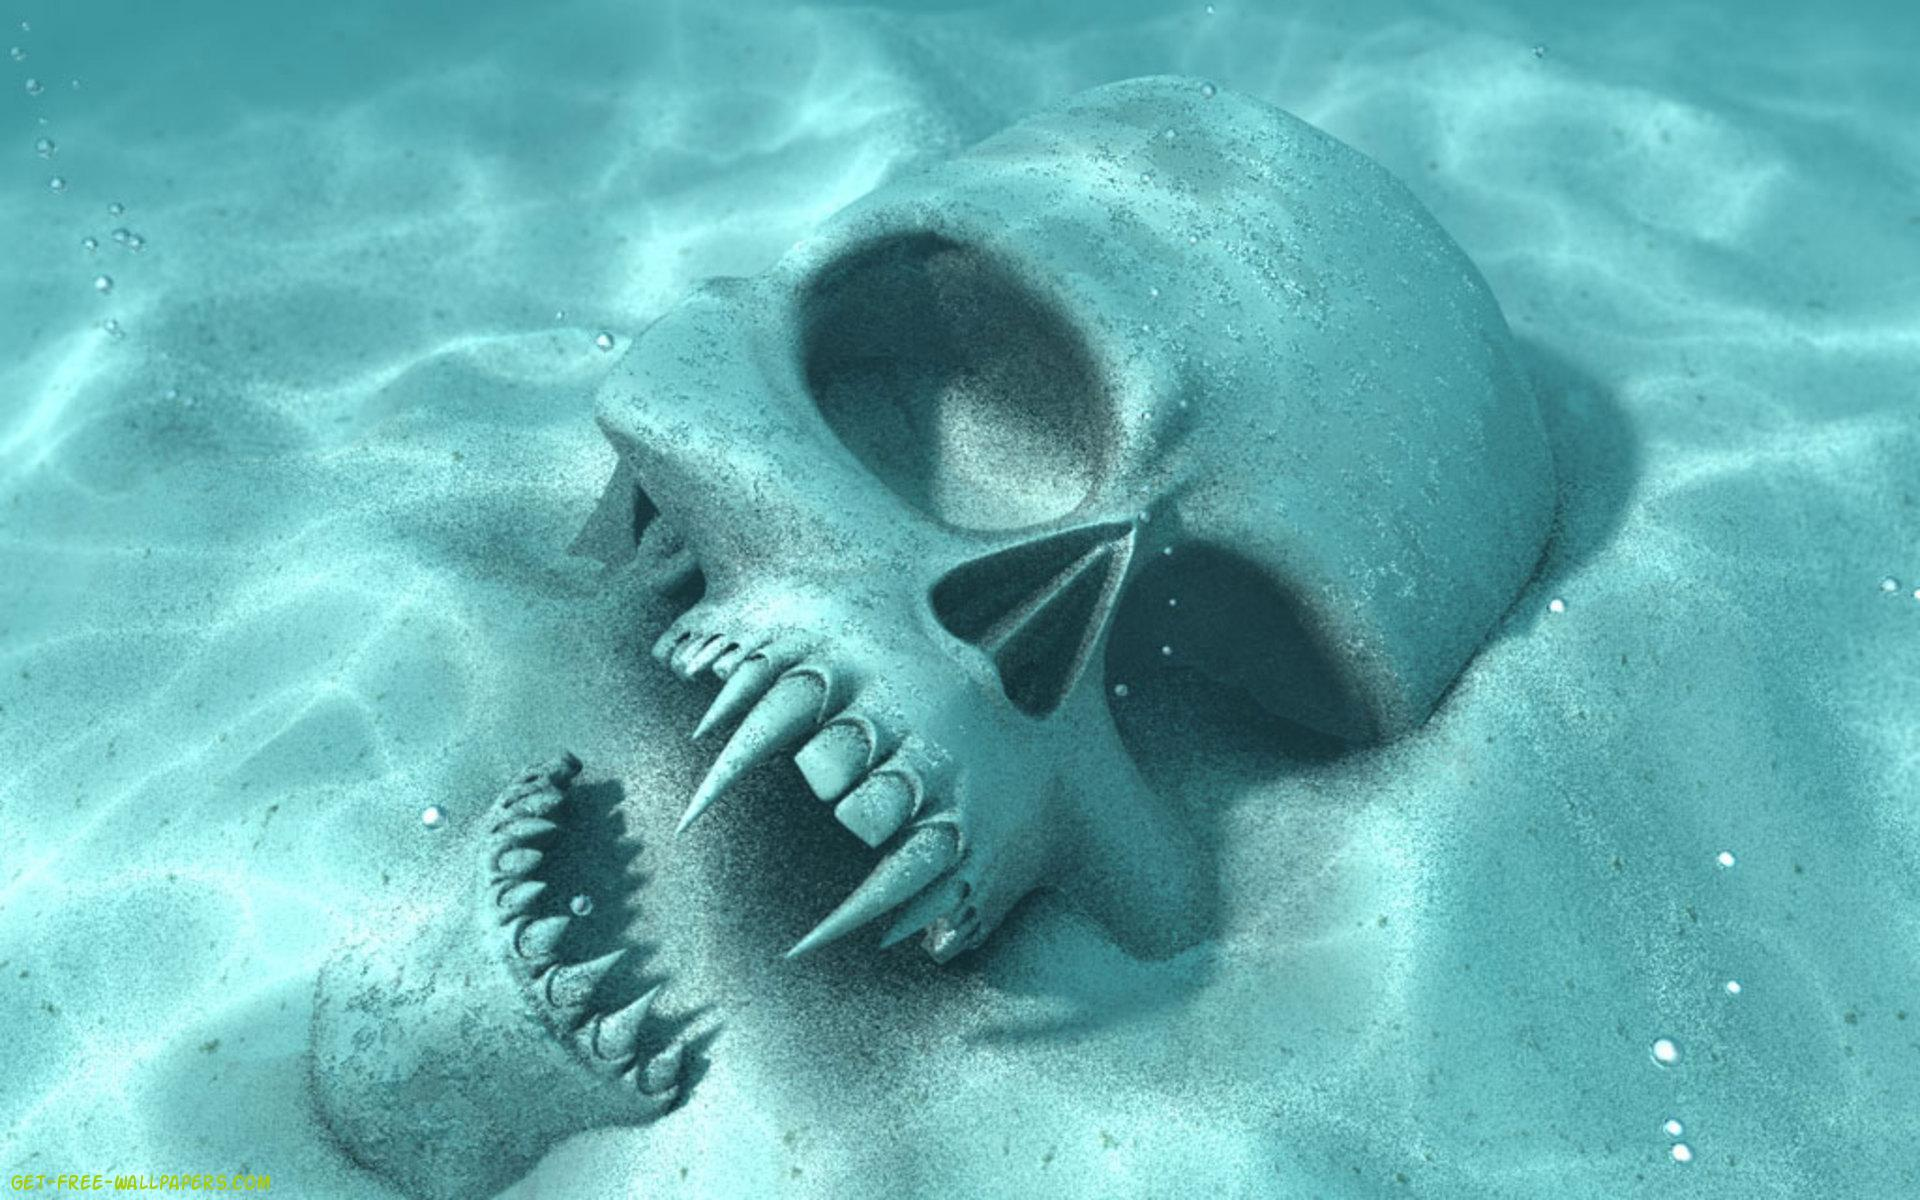 череп в воде, фон, текстура, фото, skull in water texture background